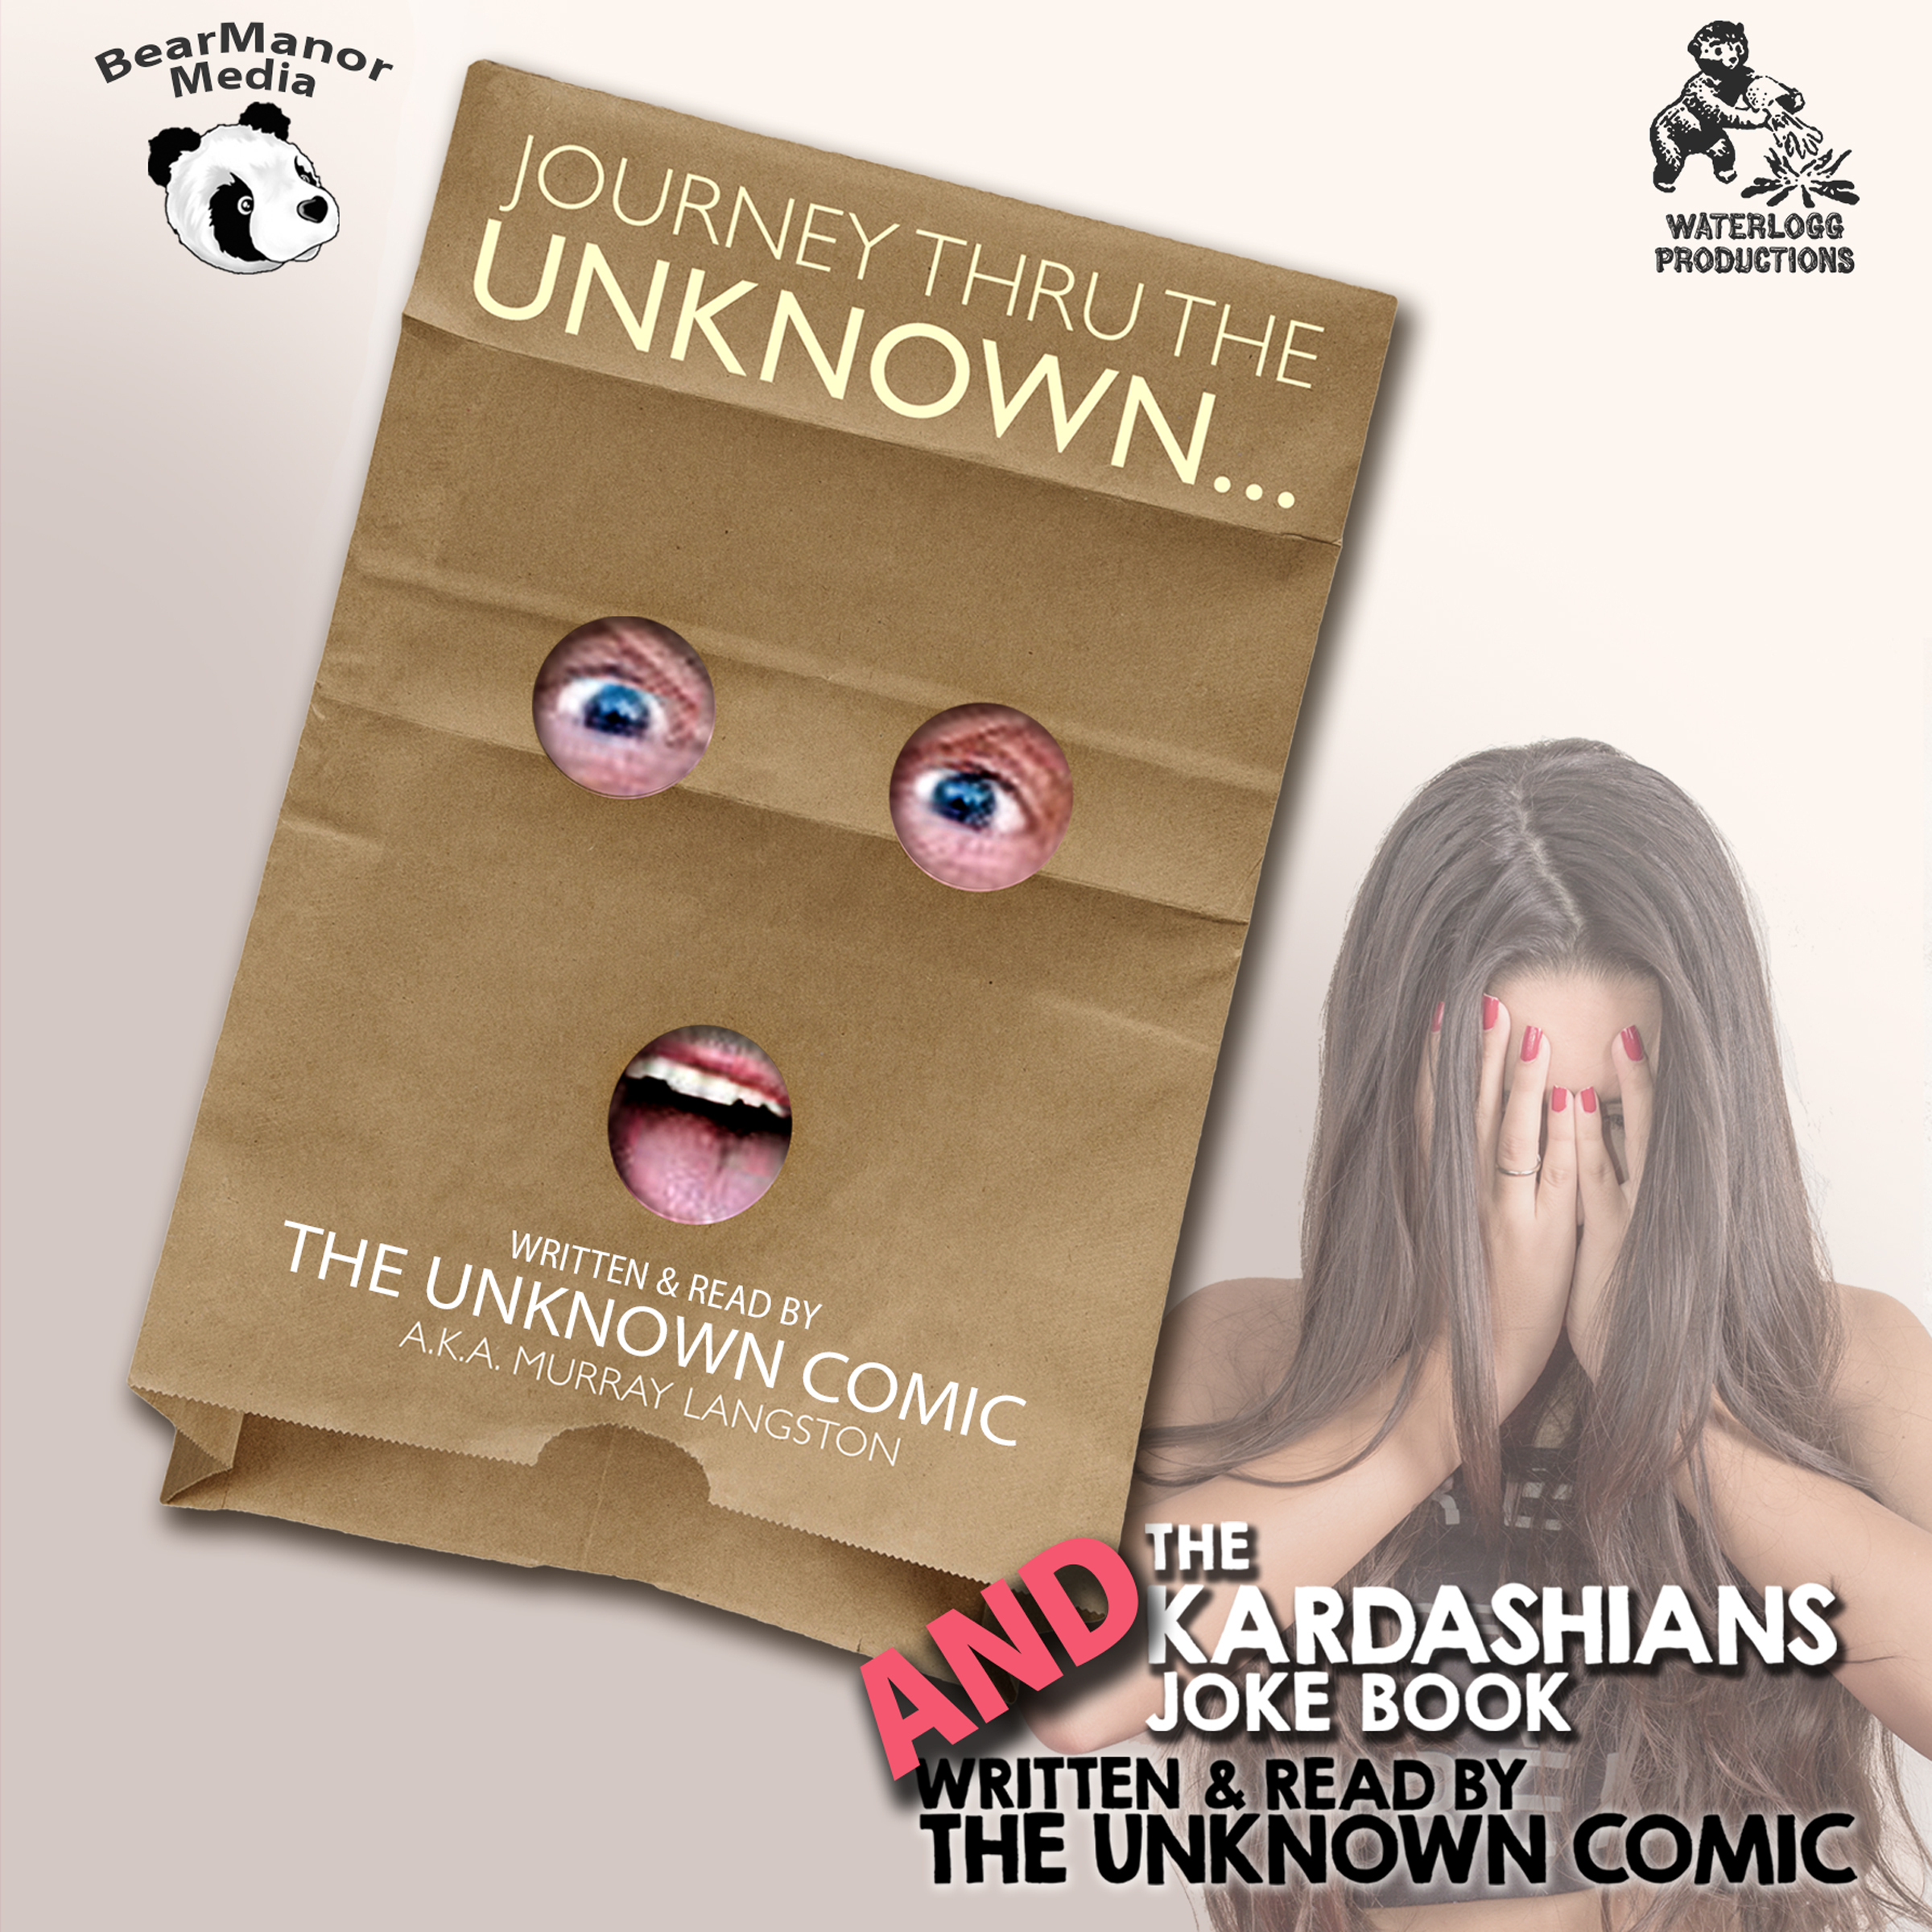 Printable The Unknown Comic Collection: Journey thru the Unknown and The Kardashians Joke Book Audiobook Cover Art